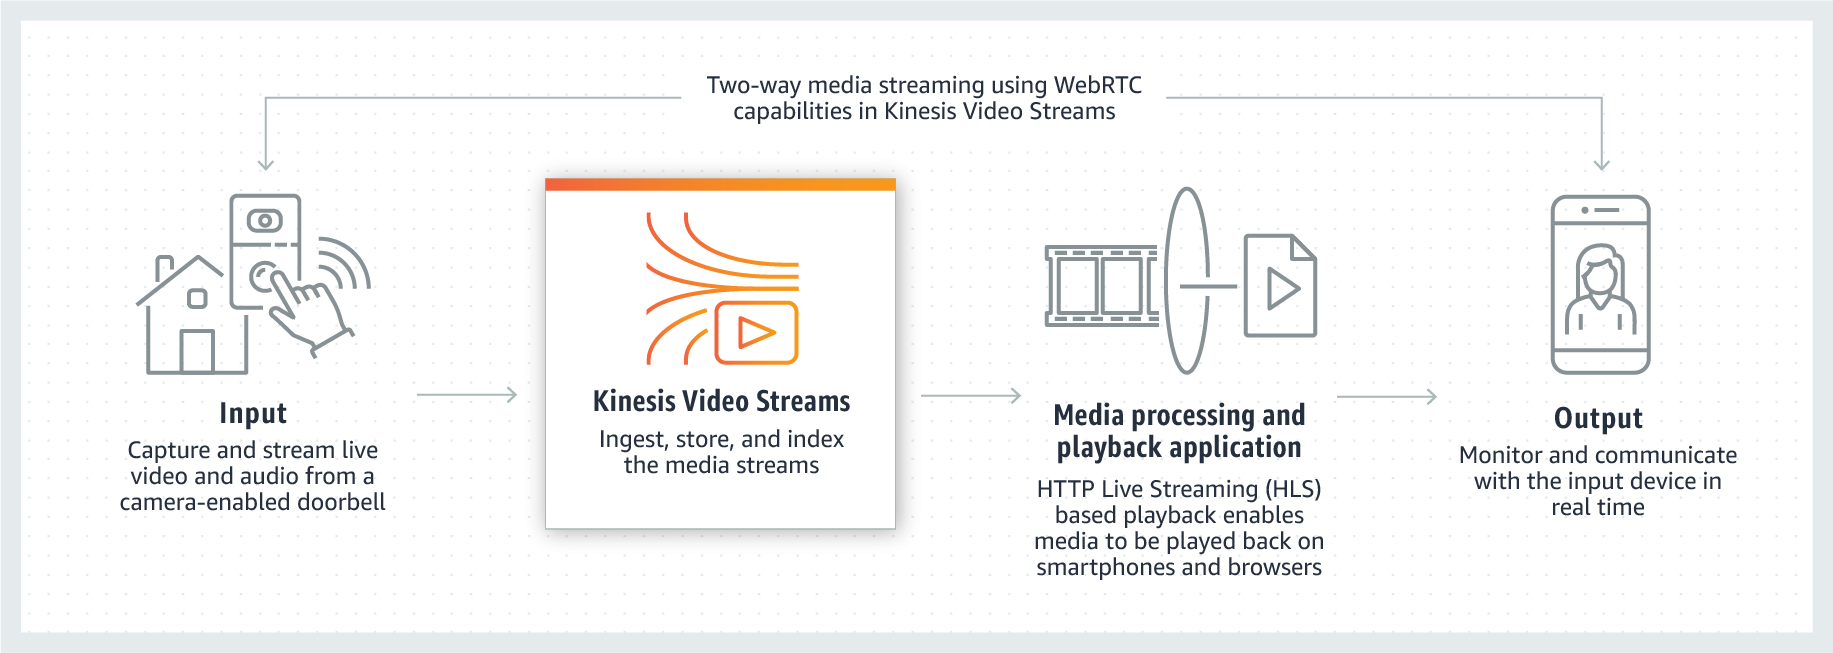 Пример использования Amazon Kinesis Video Streams для умного дома